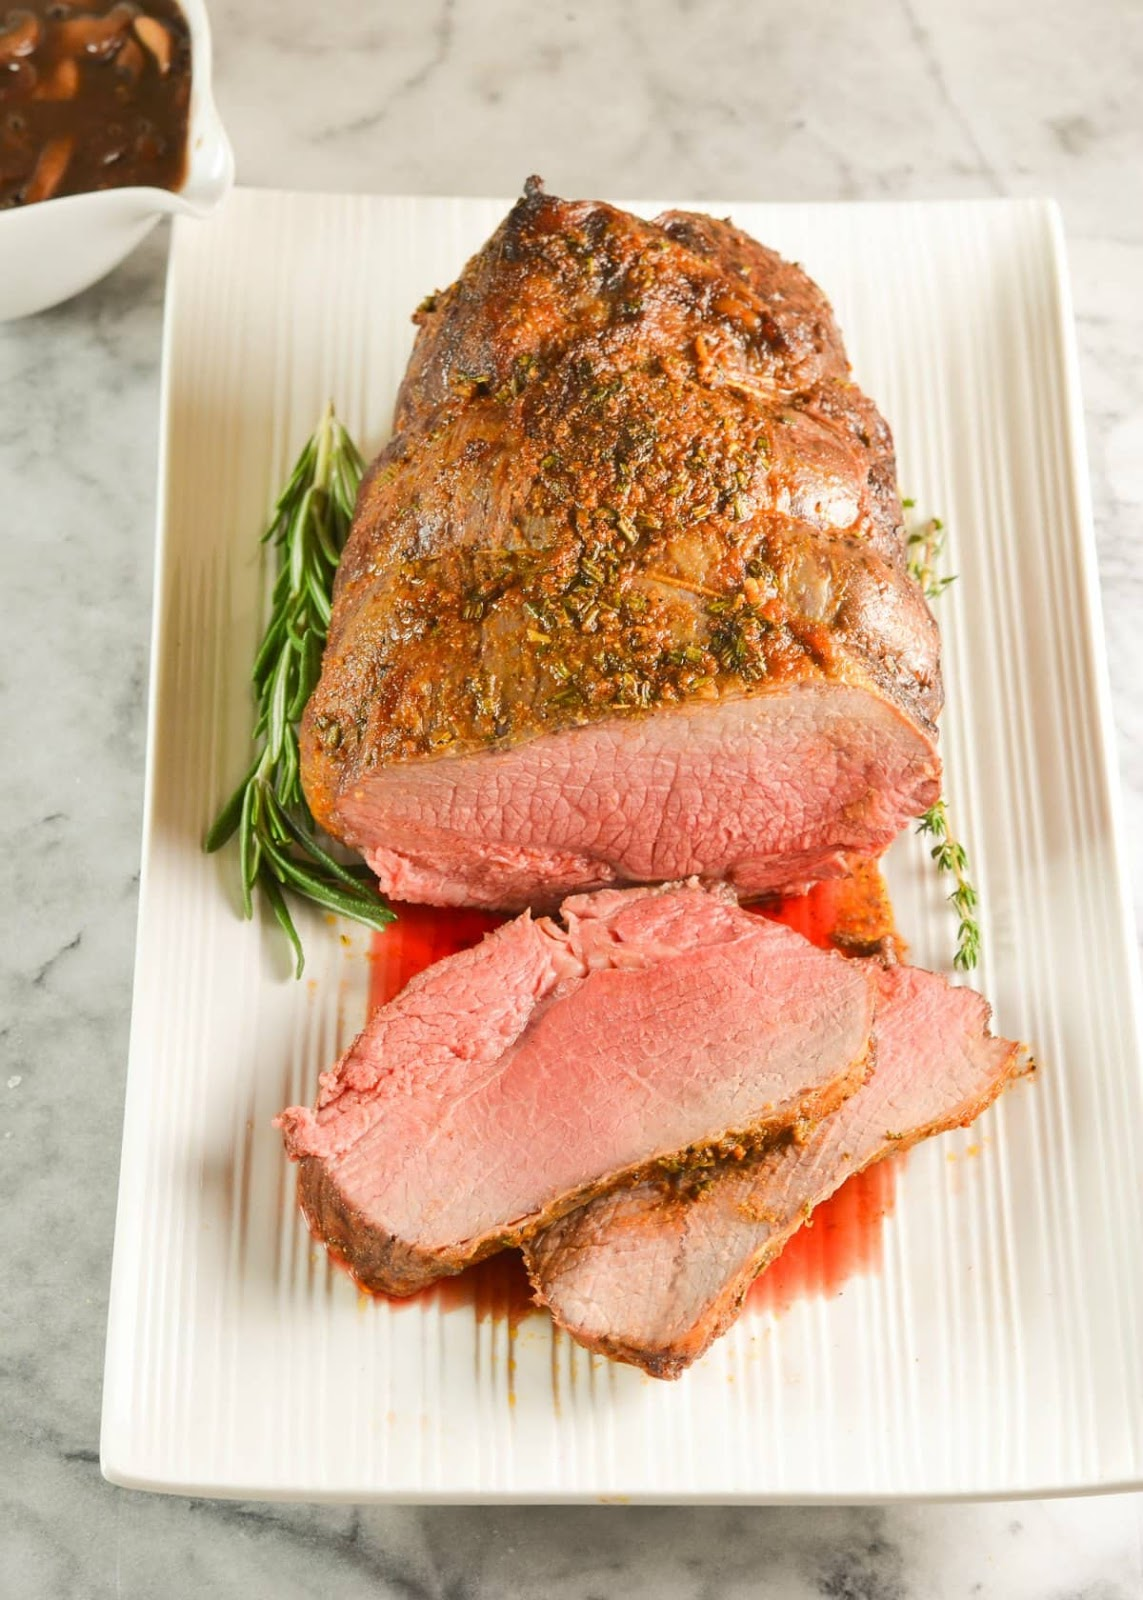 Sirloin Roast Beef with Mushroom Red Wine Gravy is a favorite Sunday Roast. So much flavor from herb butter and the hearty gravy. Delicious for Thanksgiving or Christmas from Serena Bakes Simply From Scratch.